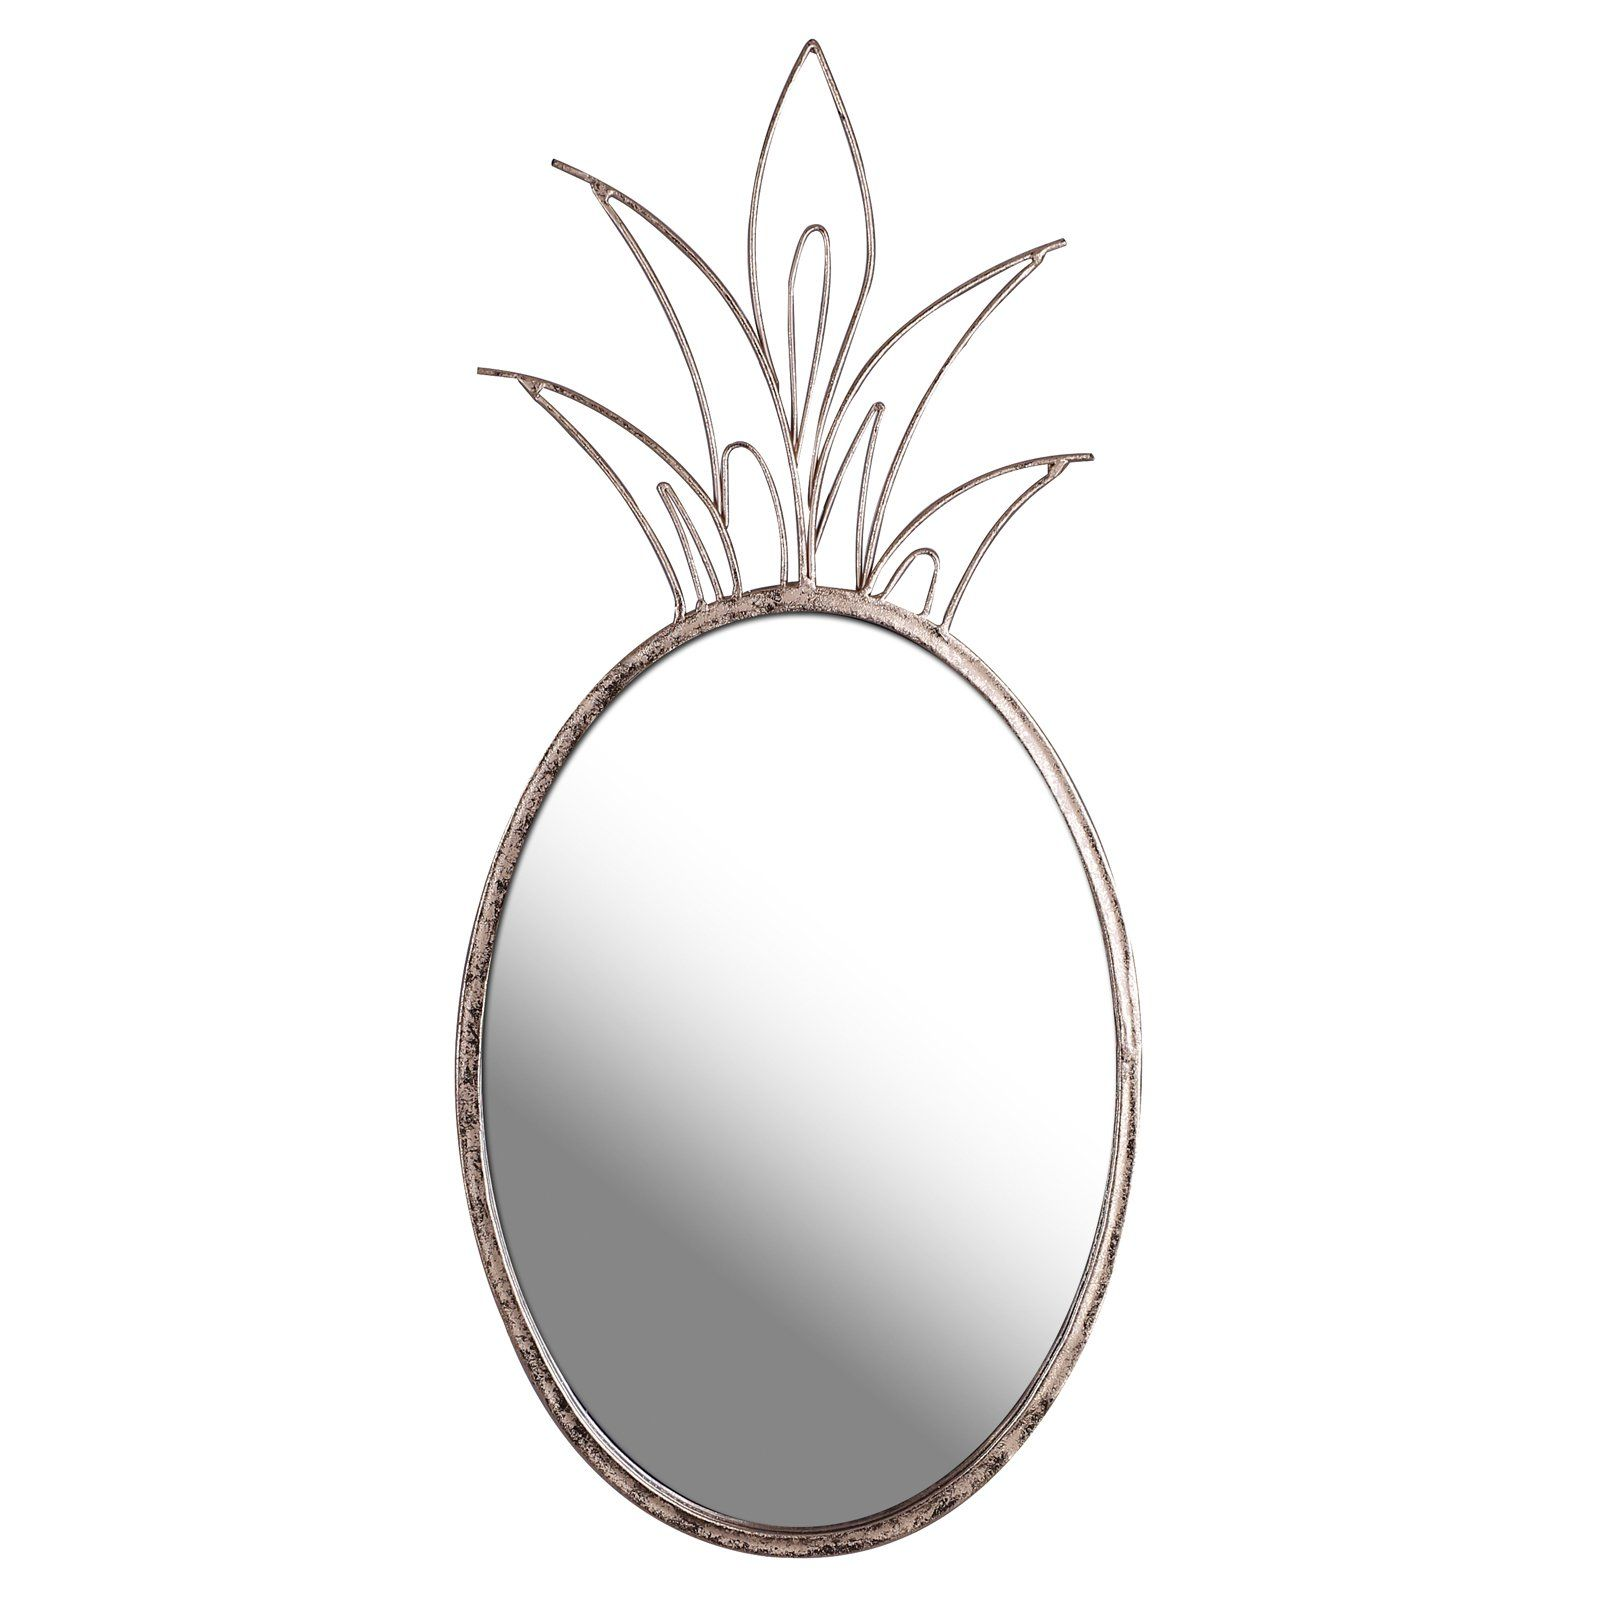 Mirrorize Canada Gold Pineapple Decorative Wall Mirror 10 5w X 22 75h In Mirror Wall Mirror Mirror Wall Decor